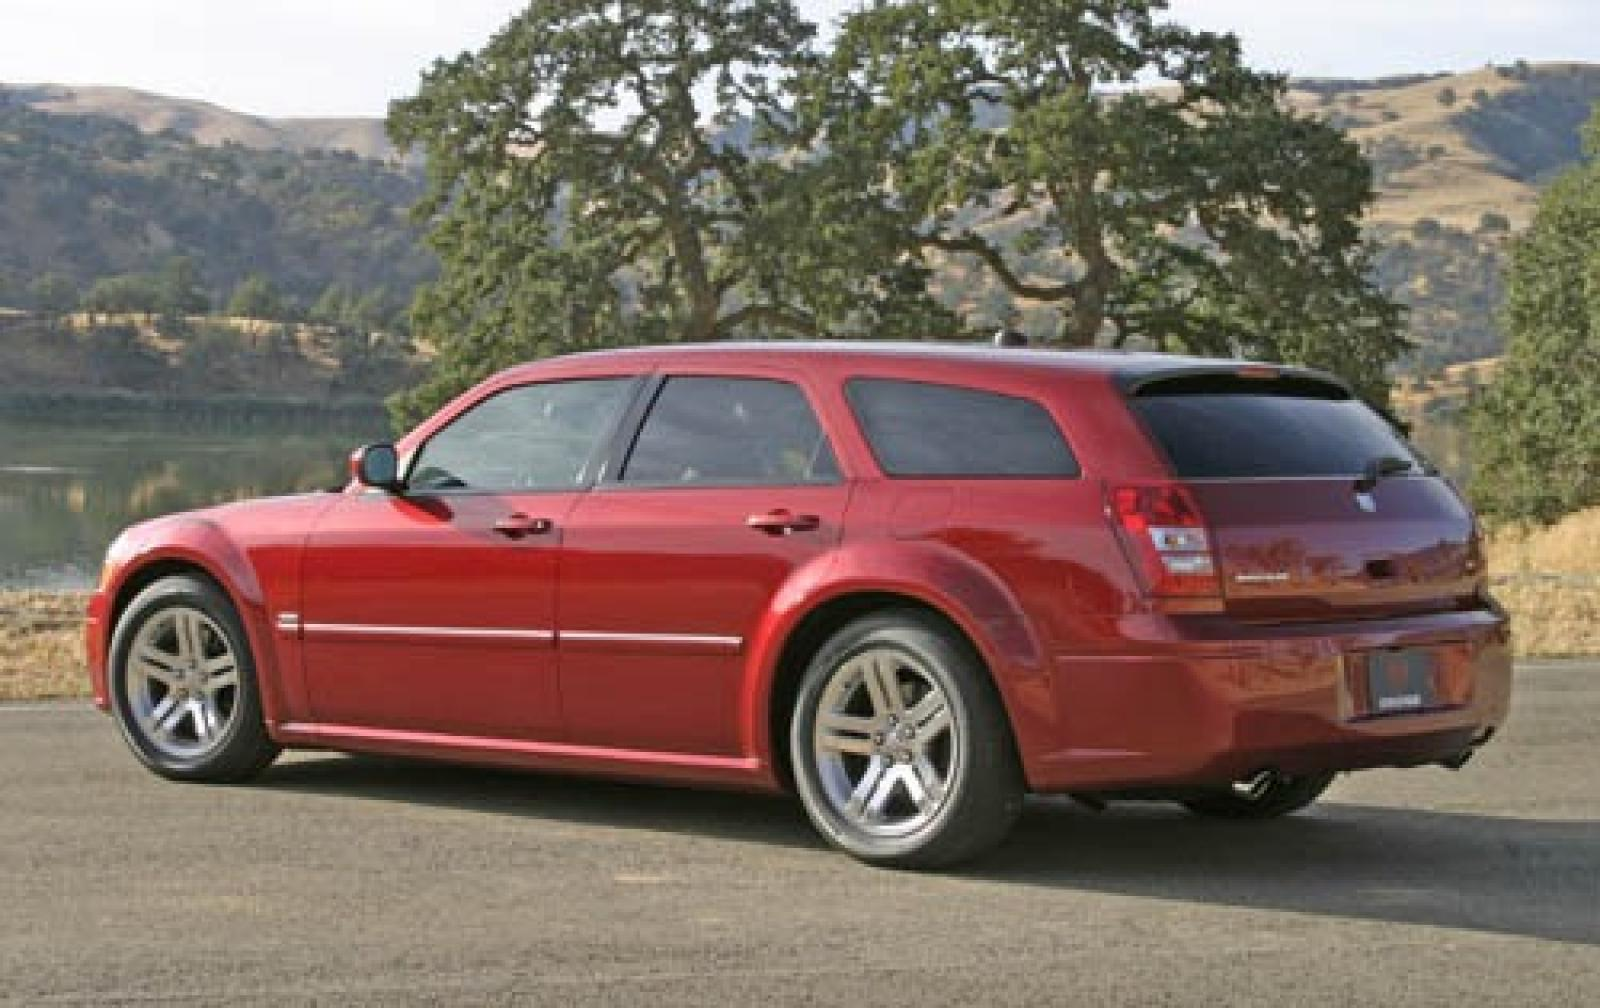 2006 dodge magnum information and photos zombiedrive. Black Bedroom Furniture Sets. Home Design Ideas